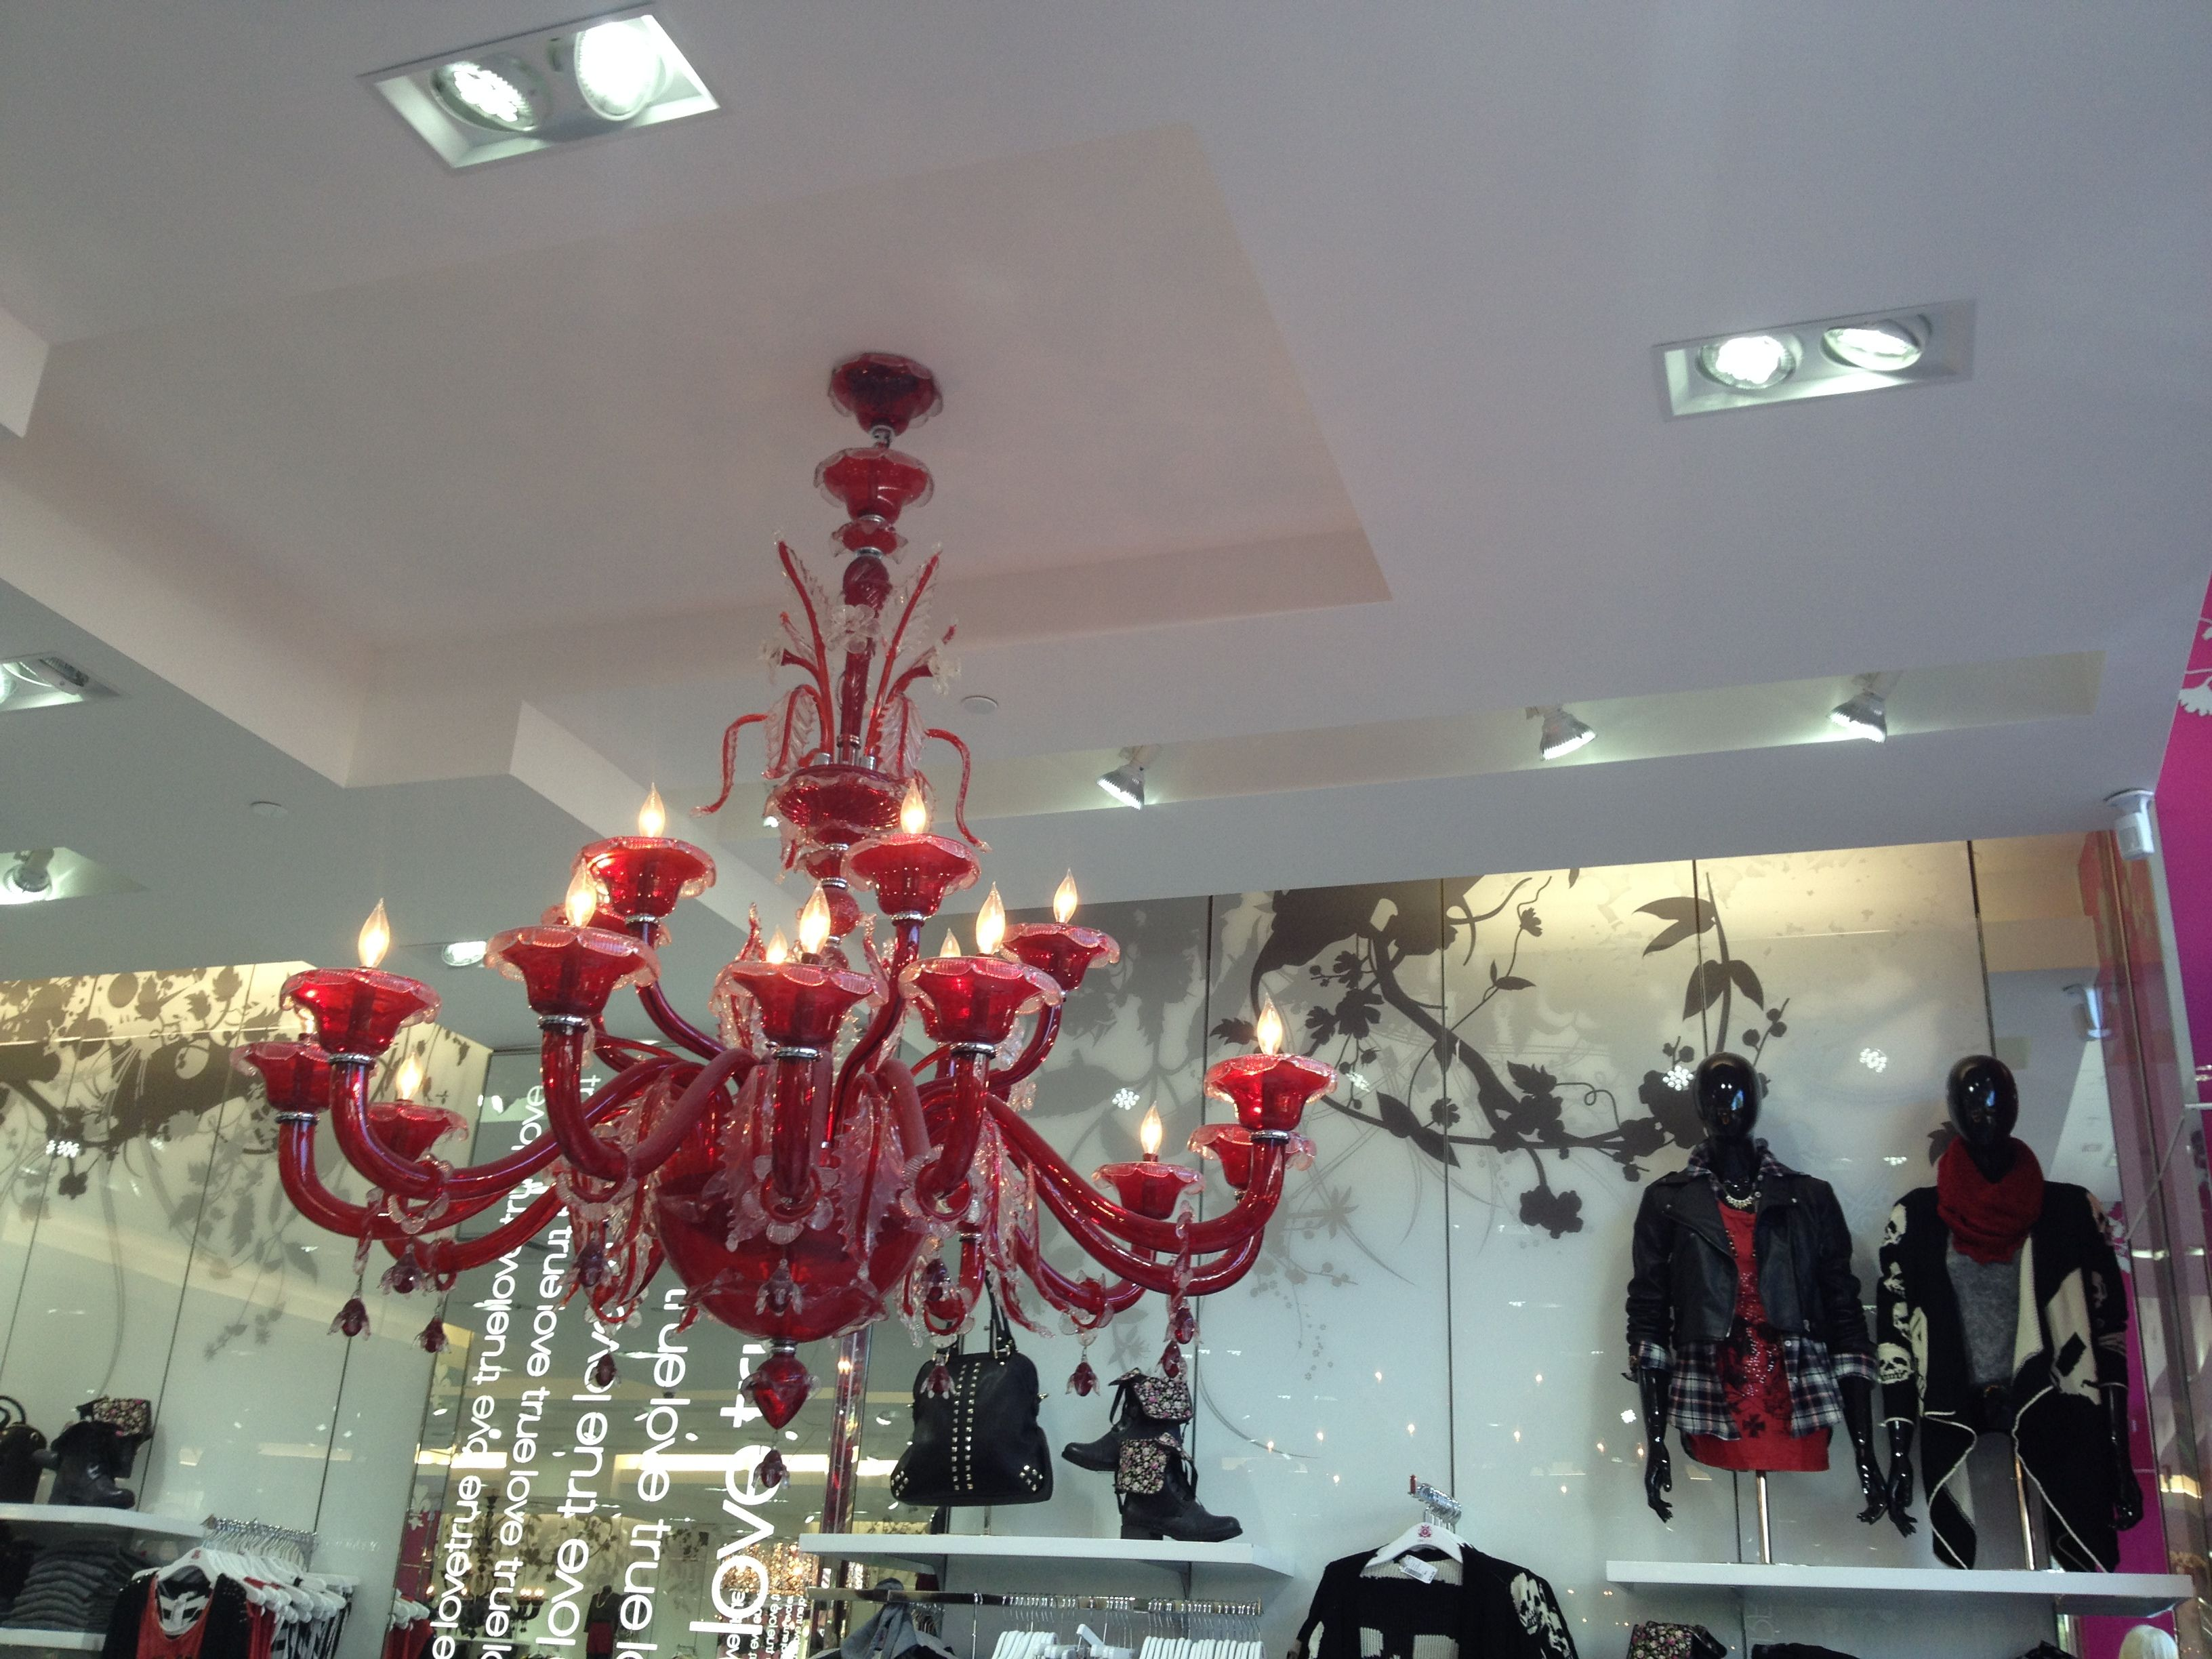 Red murano glass chandelier love culture store shops at la cantera red murano glass chandelier love culture store shops at la cantera san antonio tx aloadofball Image collections